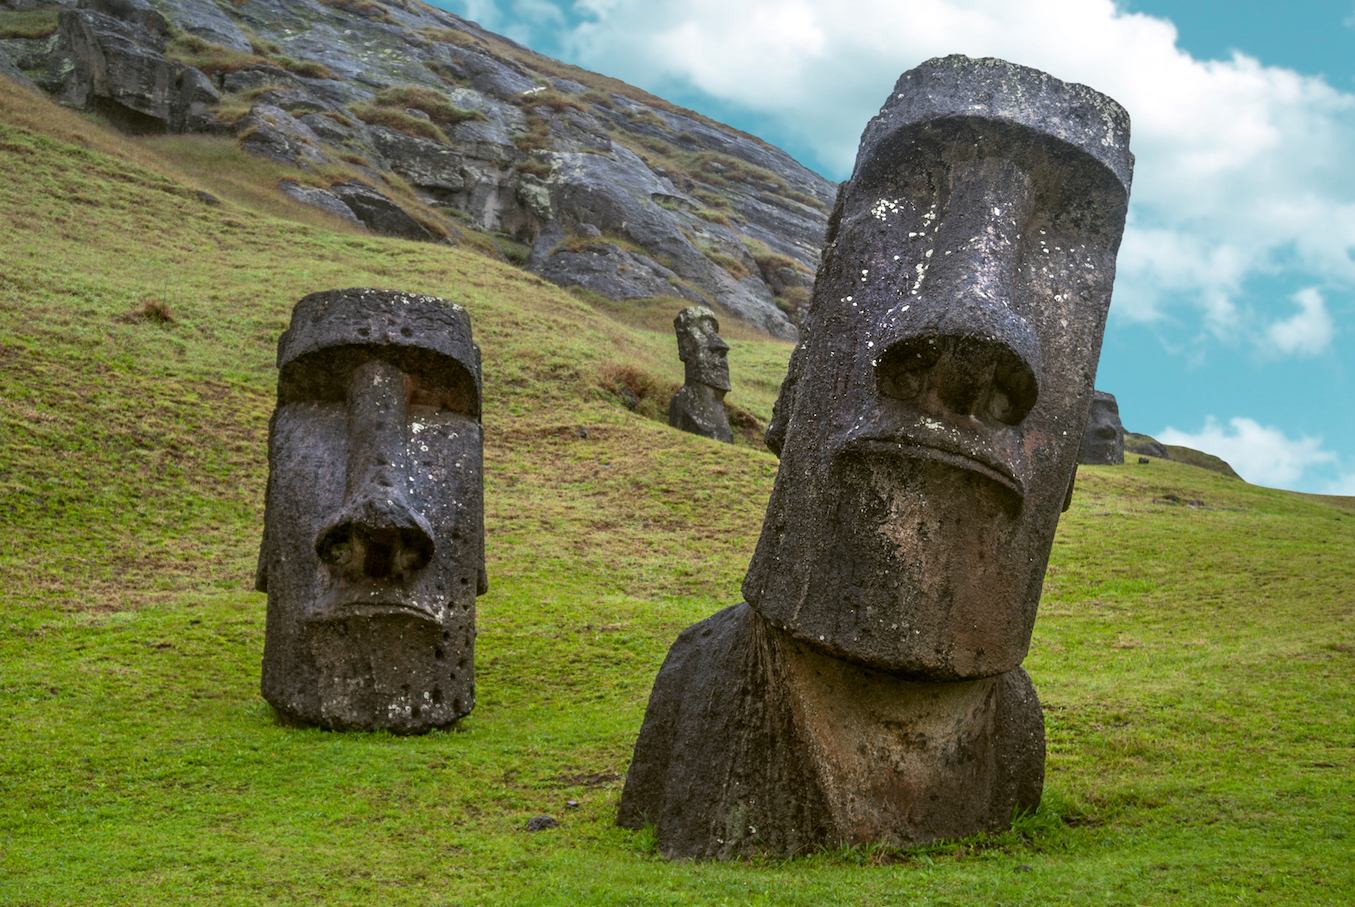 Easter Island in the southeastern Pacific Ocean is one of the most remote islands in the world, and also one of the most mysterious.